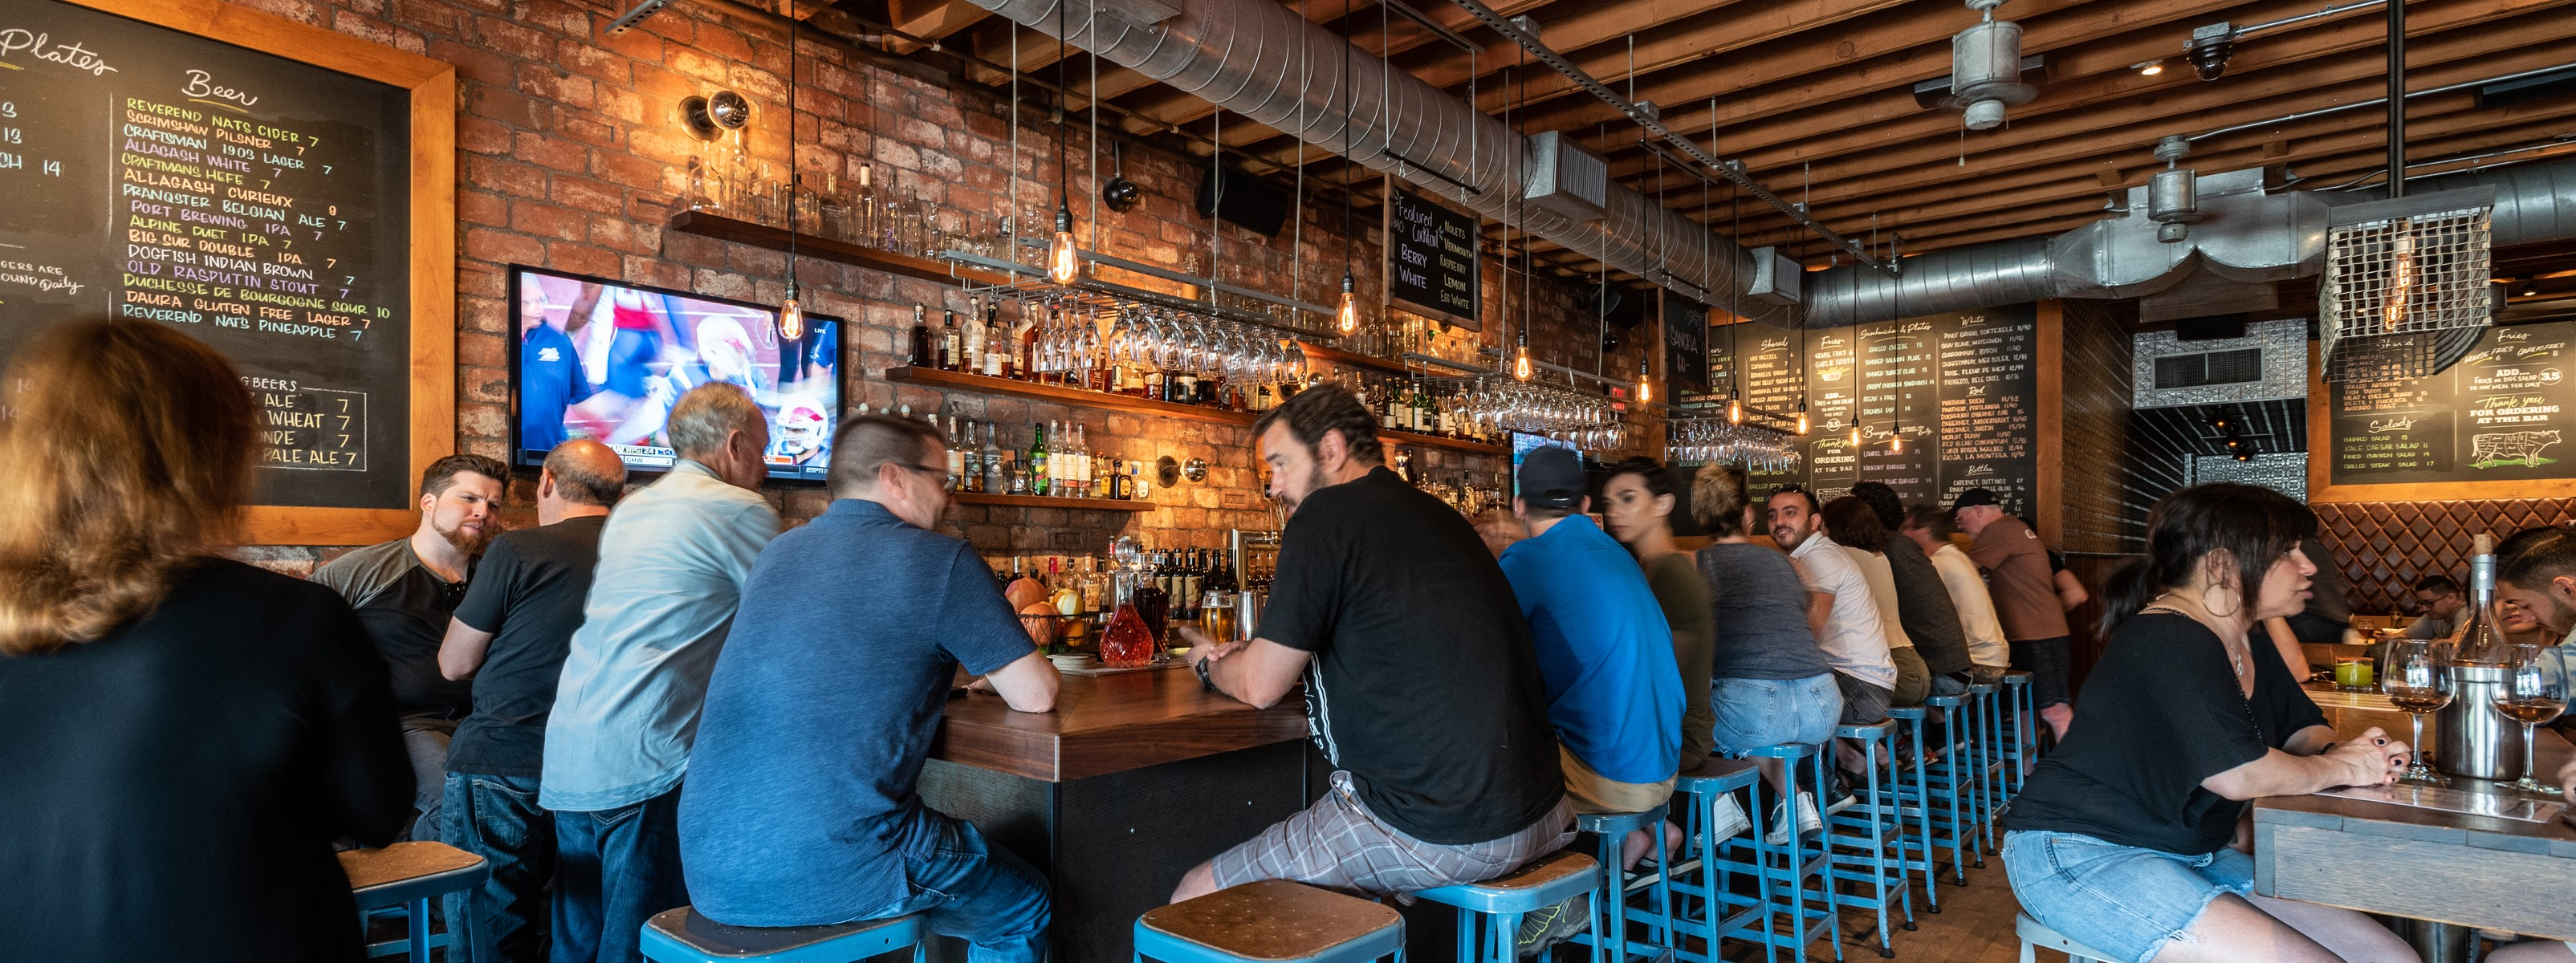 Laurel Tavern - Studio City - Los Angeles - The Infatuation